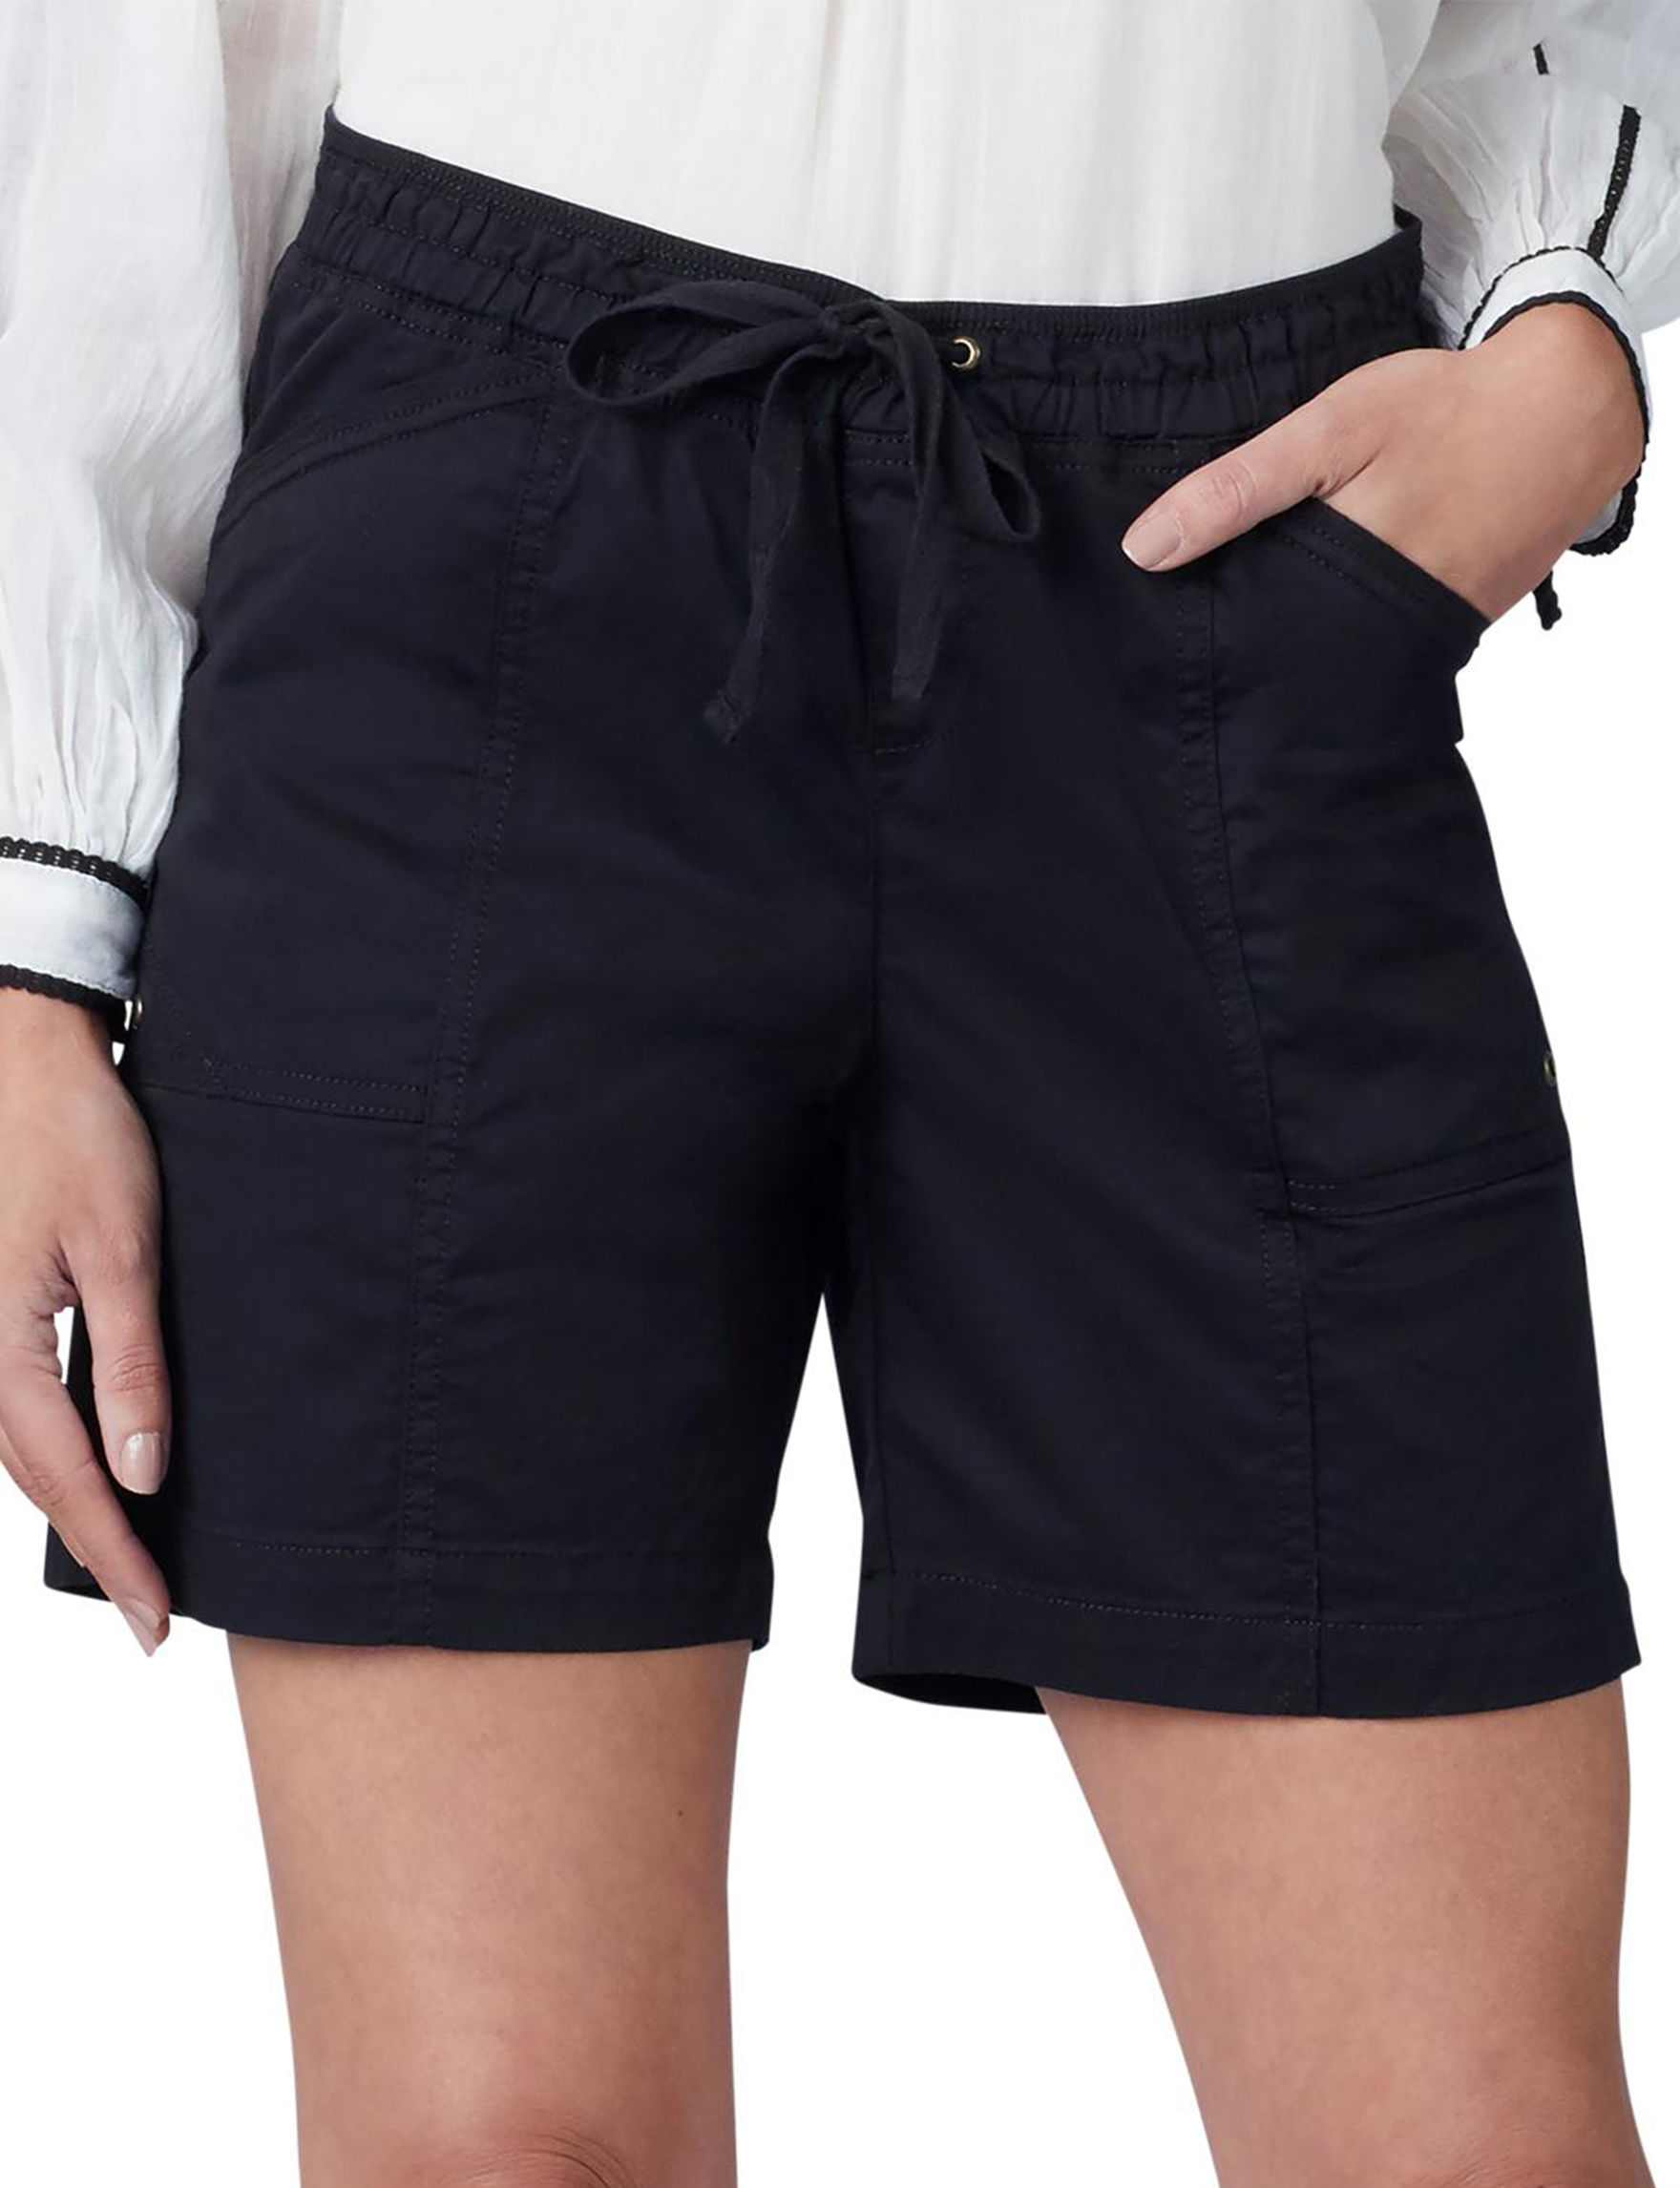 Lee Black Tailored Shorts